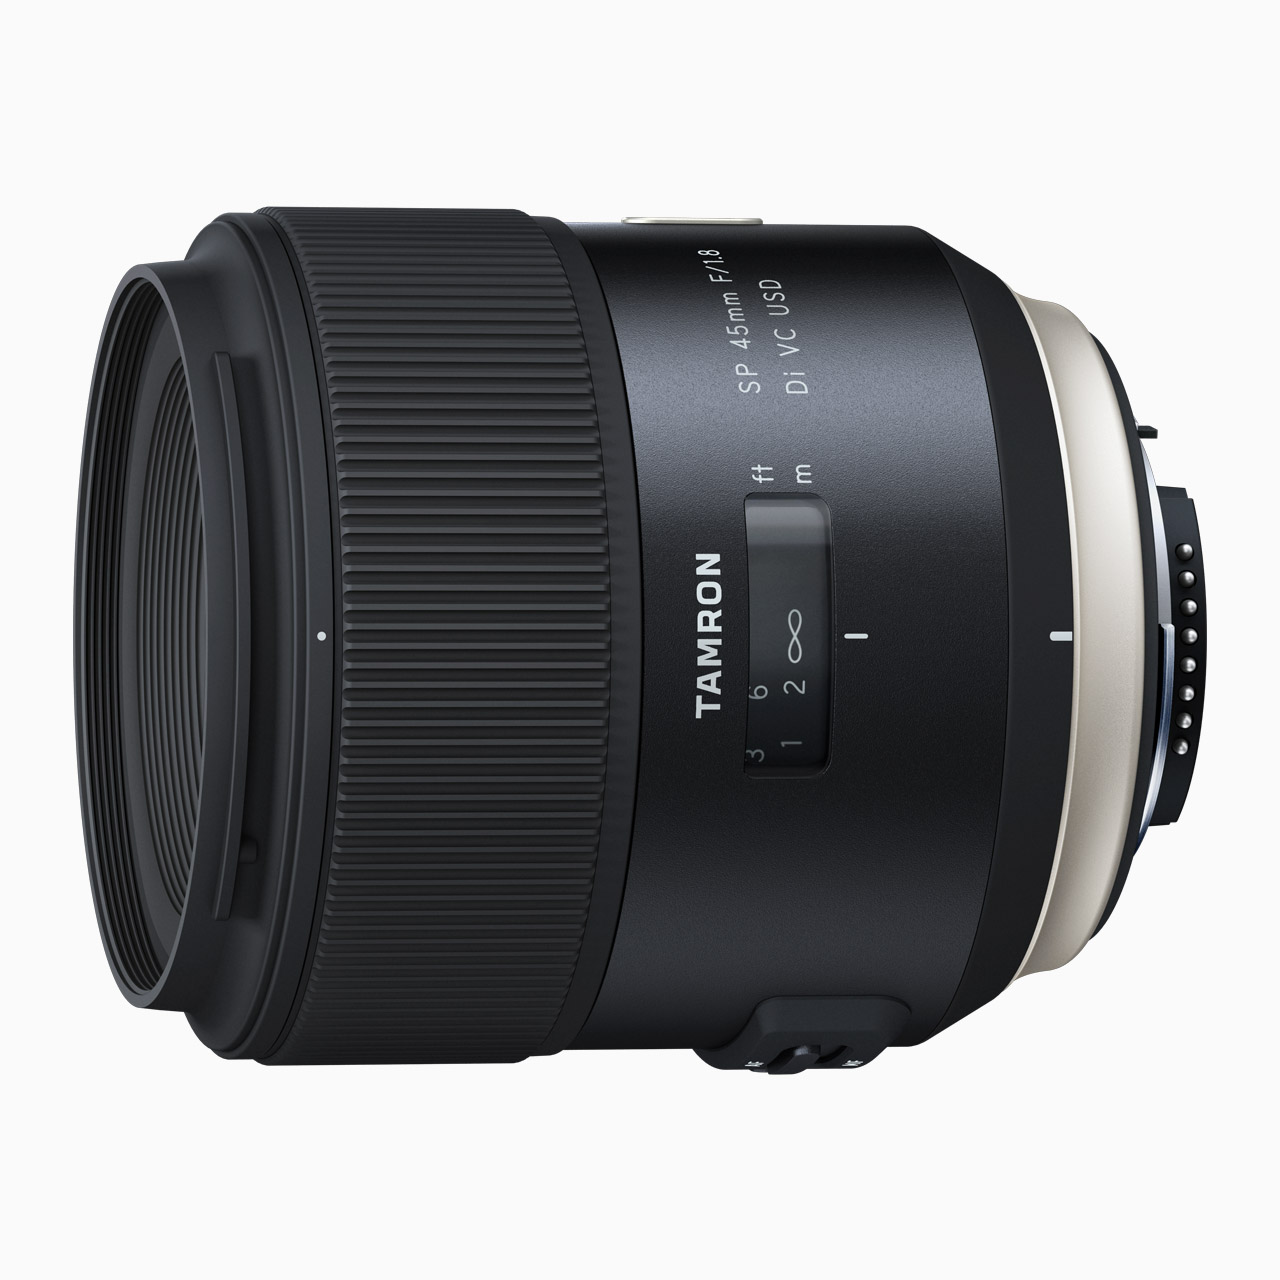 SP 45mm F/1.8 Di VC USD